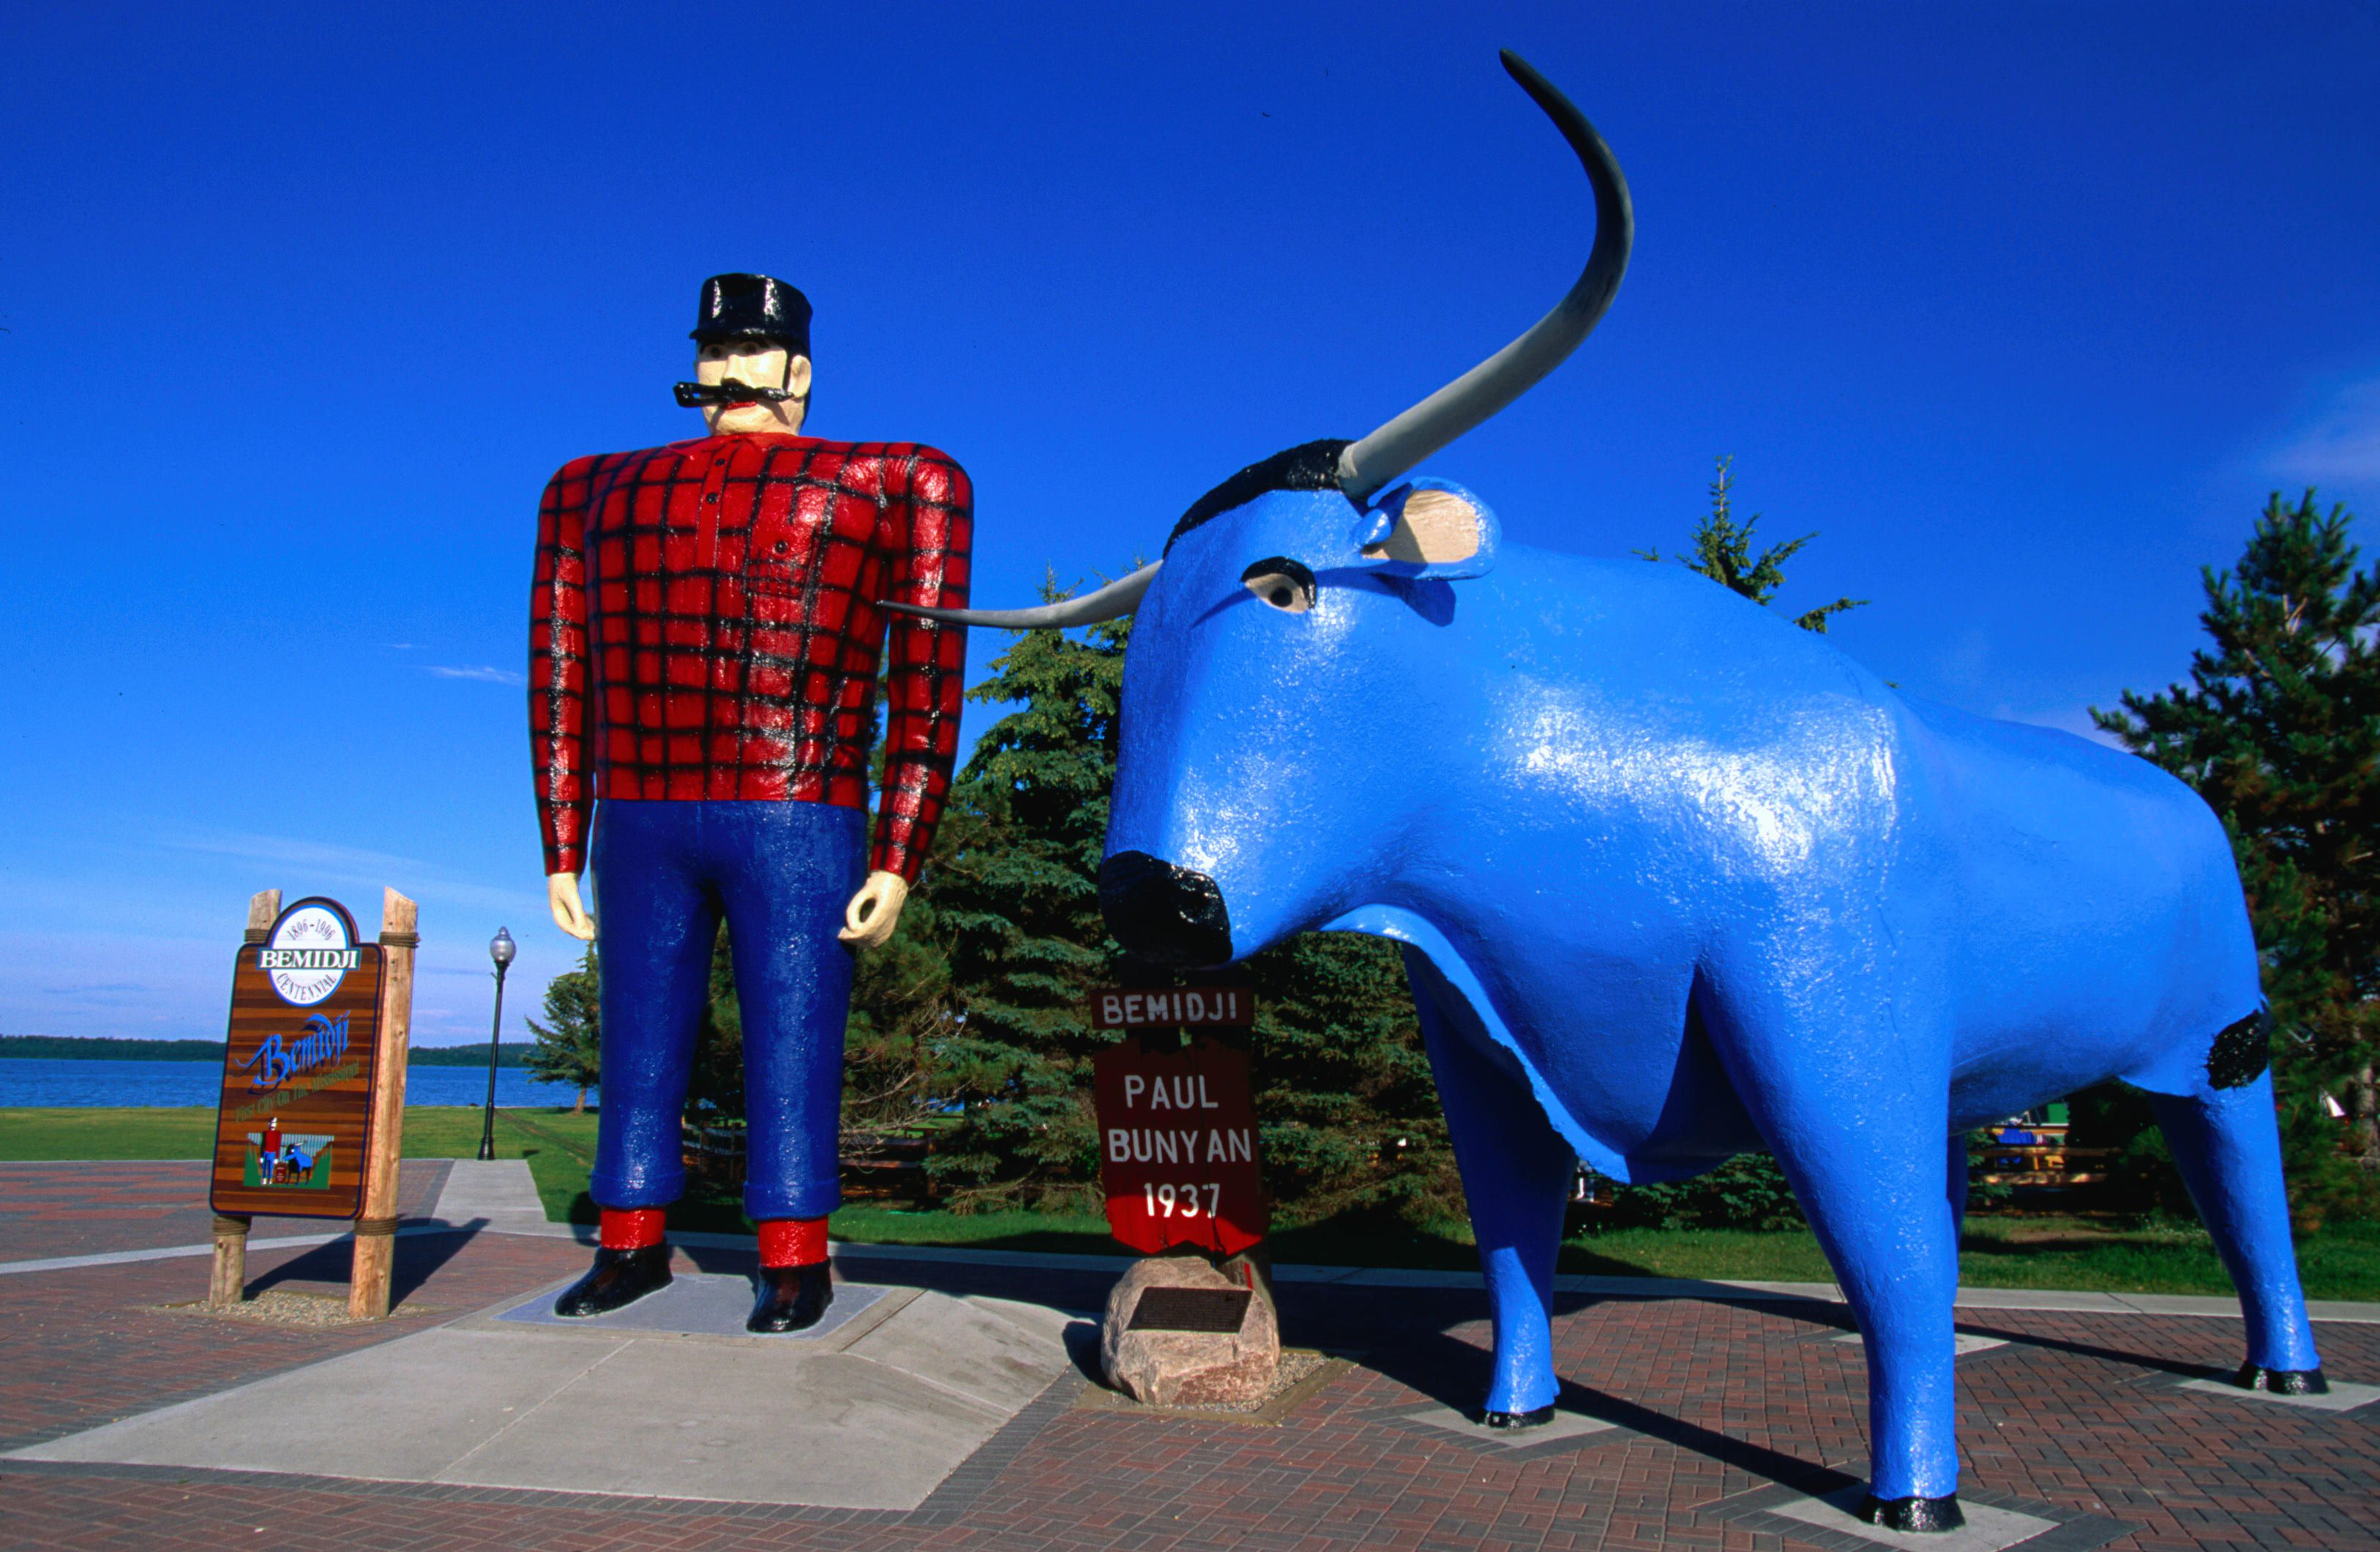 Paul Bunyan Wordsearch Crossword Puzzle And More